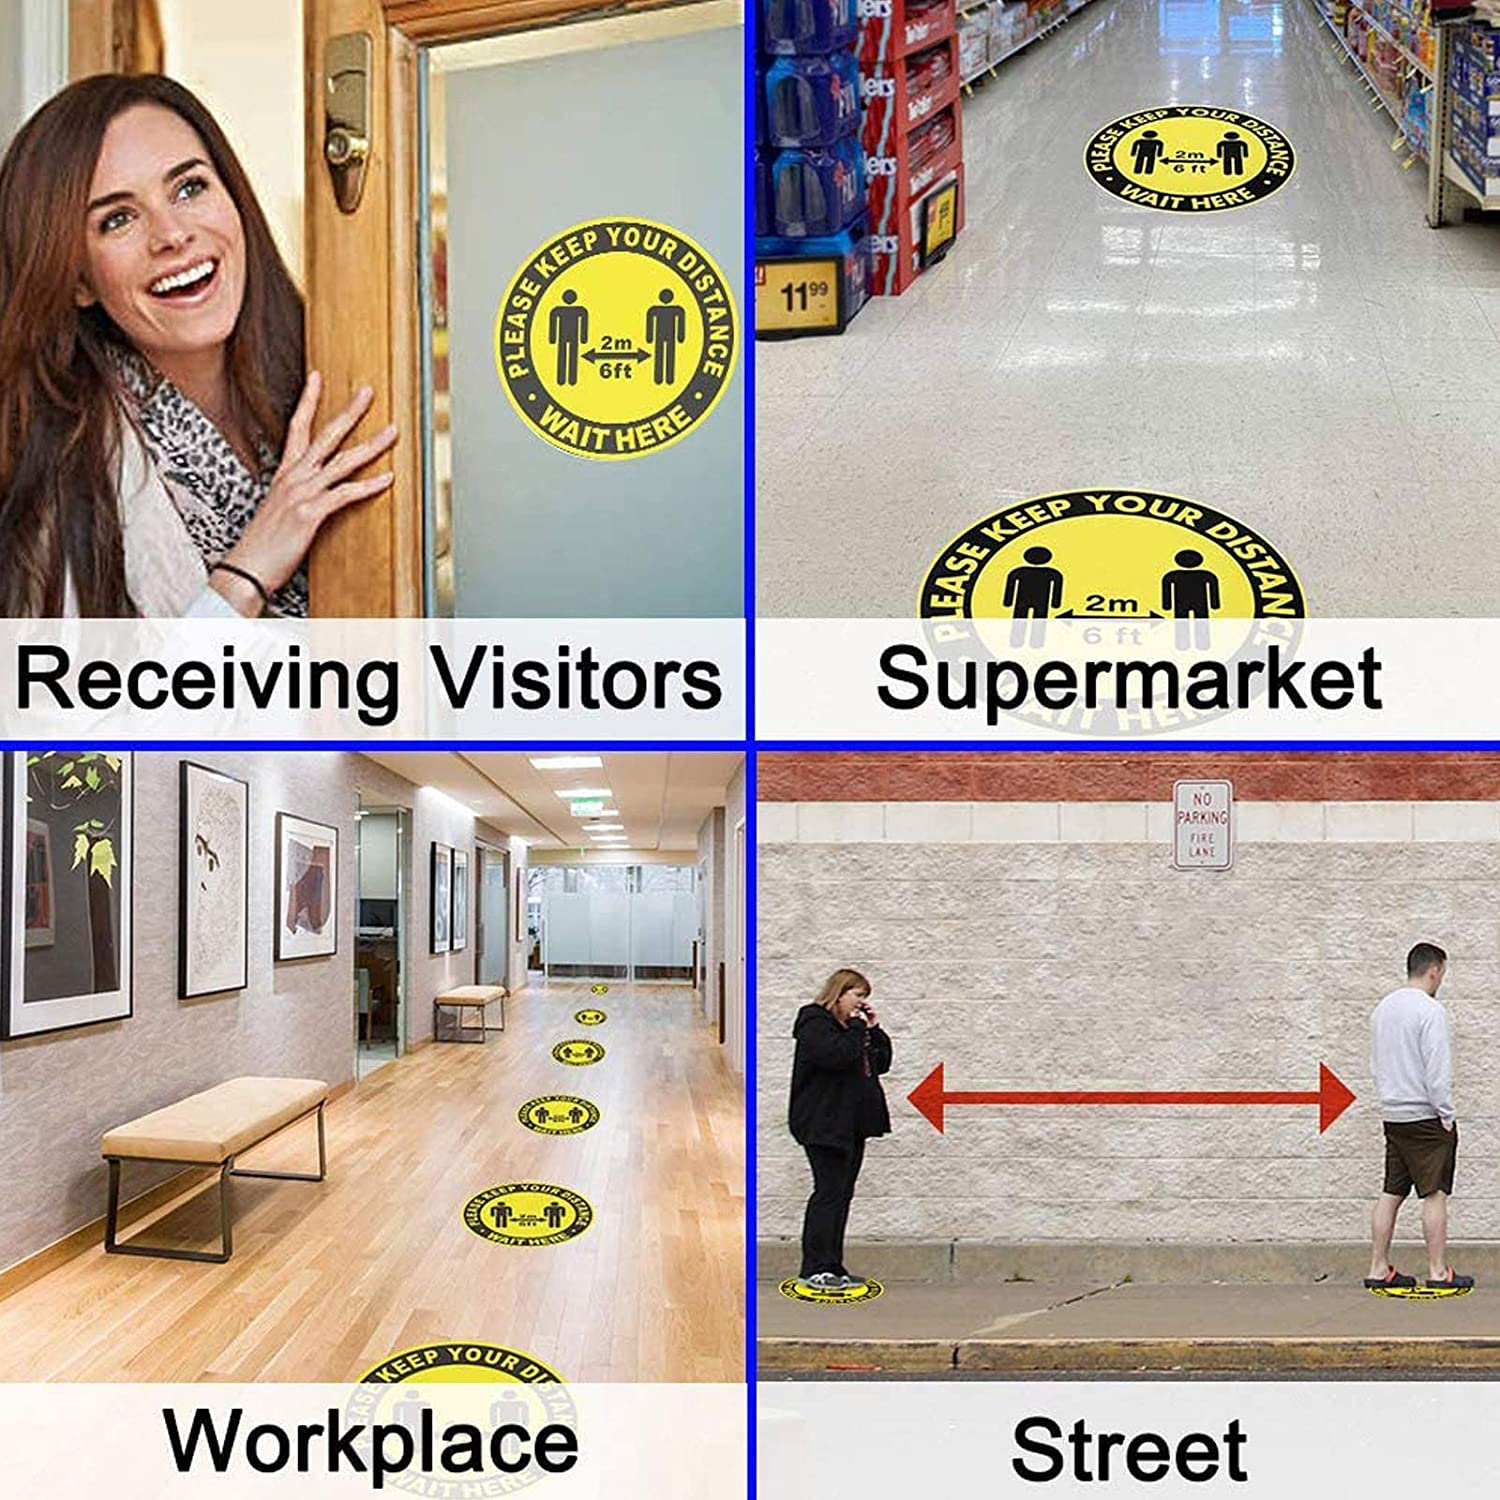 Social Distancing Floor Stickers,10pcs Yellow Warning Tape Round Removable Waterproof Anti-Slip Safety Tape- PLEASE KEEP YOUR DISTANCE WAIT HERE